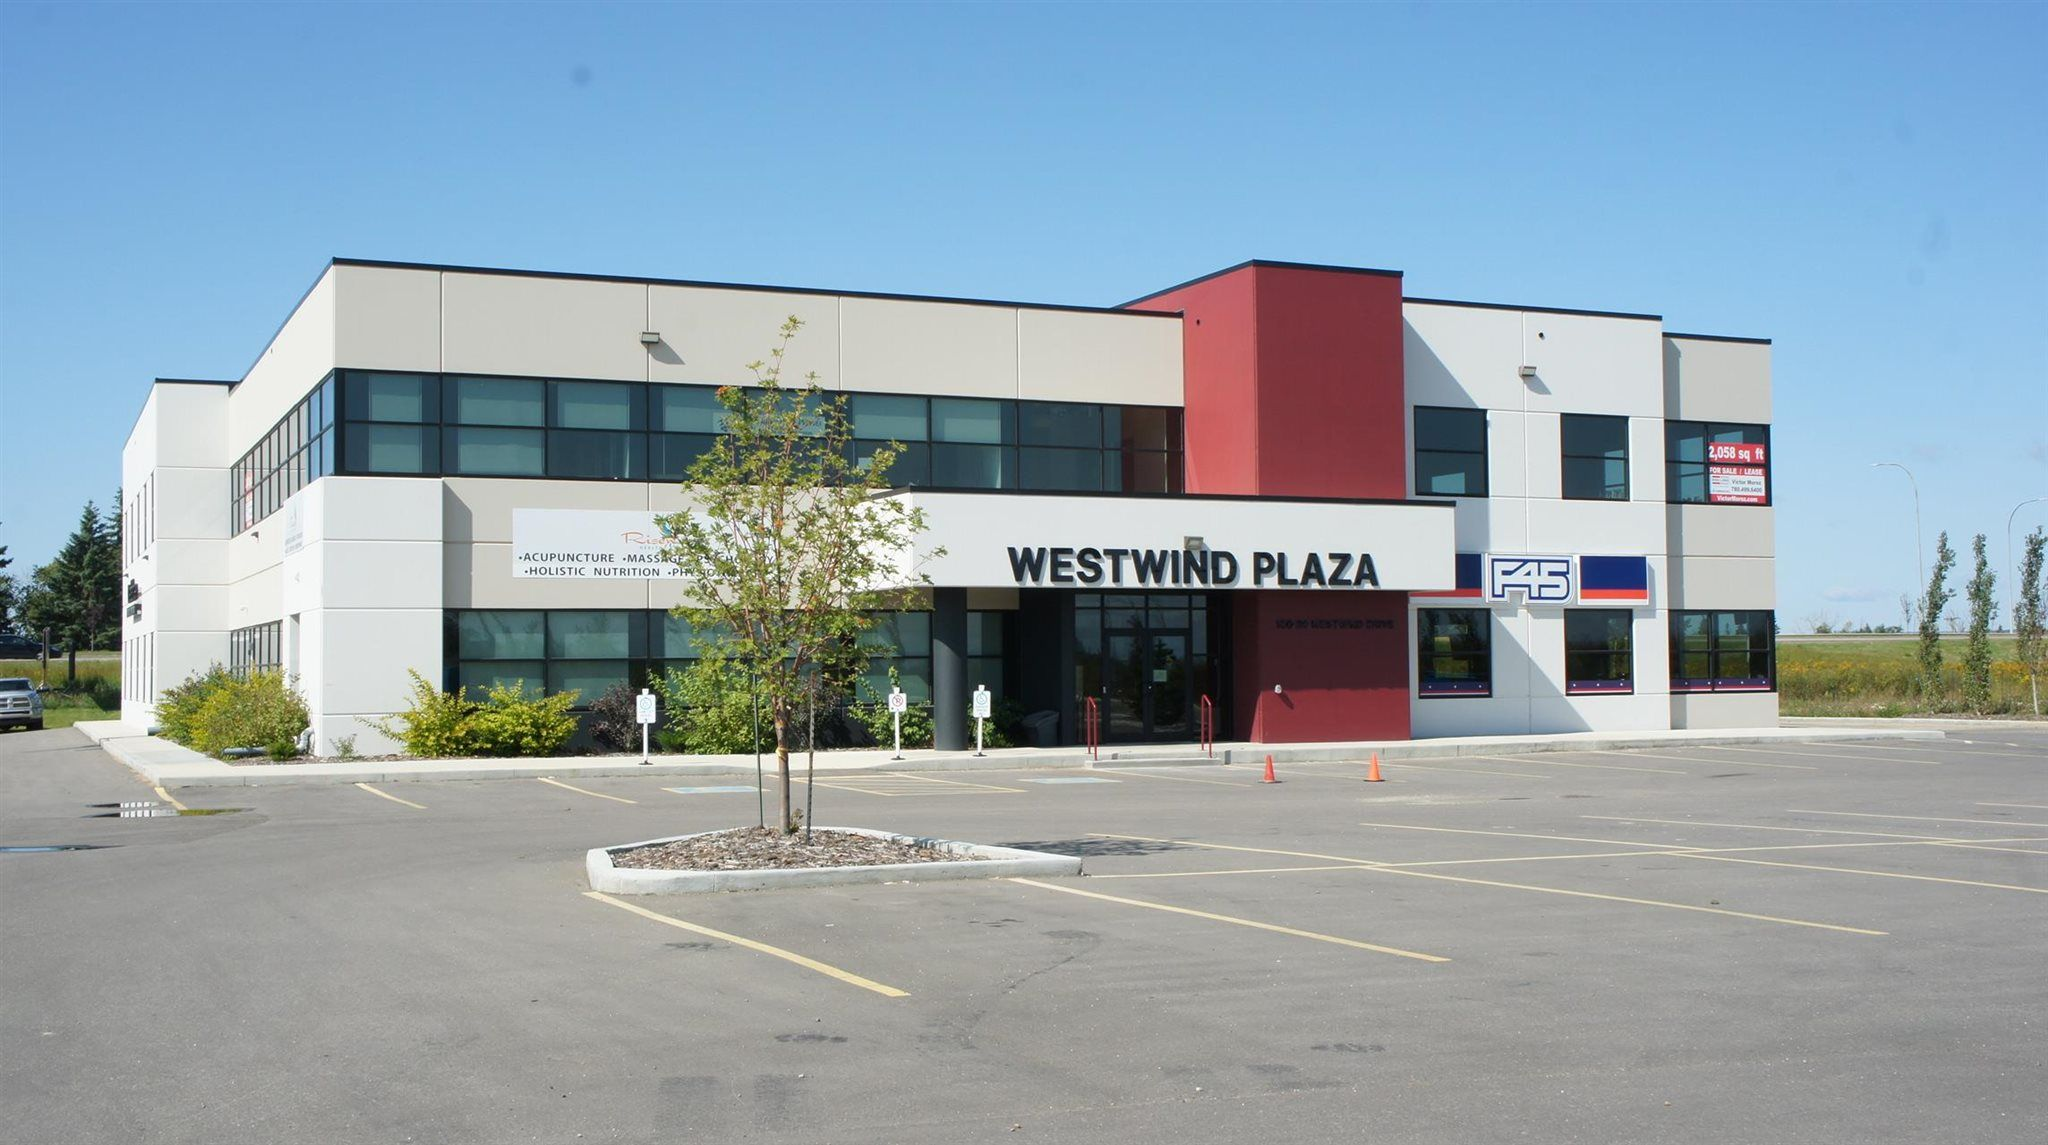 Main Photo: 126 20 WESTWIND Drive: Spruce Grove Office for sale or lease : MLS®# E4252563